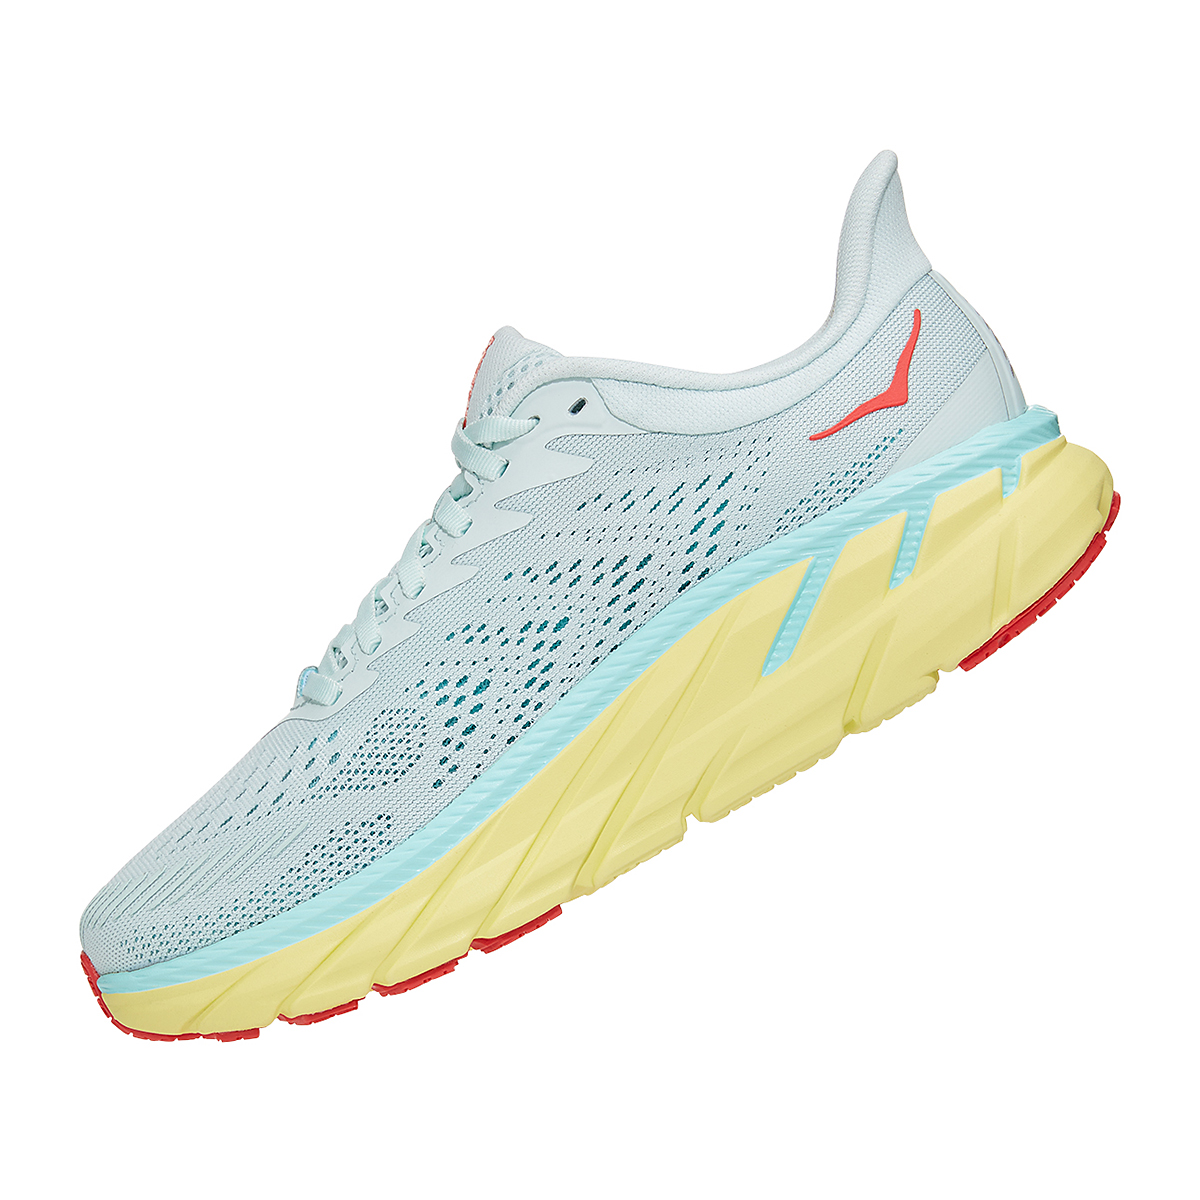 Women's Hoka One One Clifton 7 Running Shoe - Color: Morning Mist/Hot Coral - Size: 5 - Width: Regular, Morning Mist/Hot Coral, large, image 4